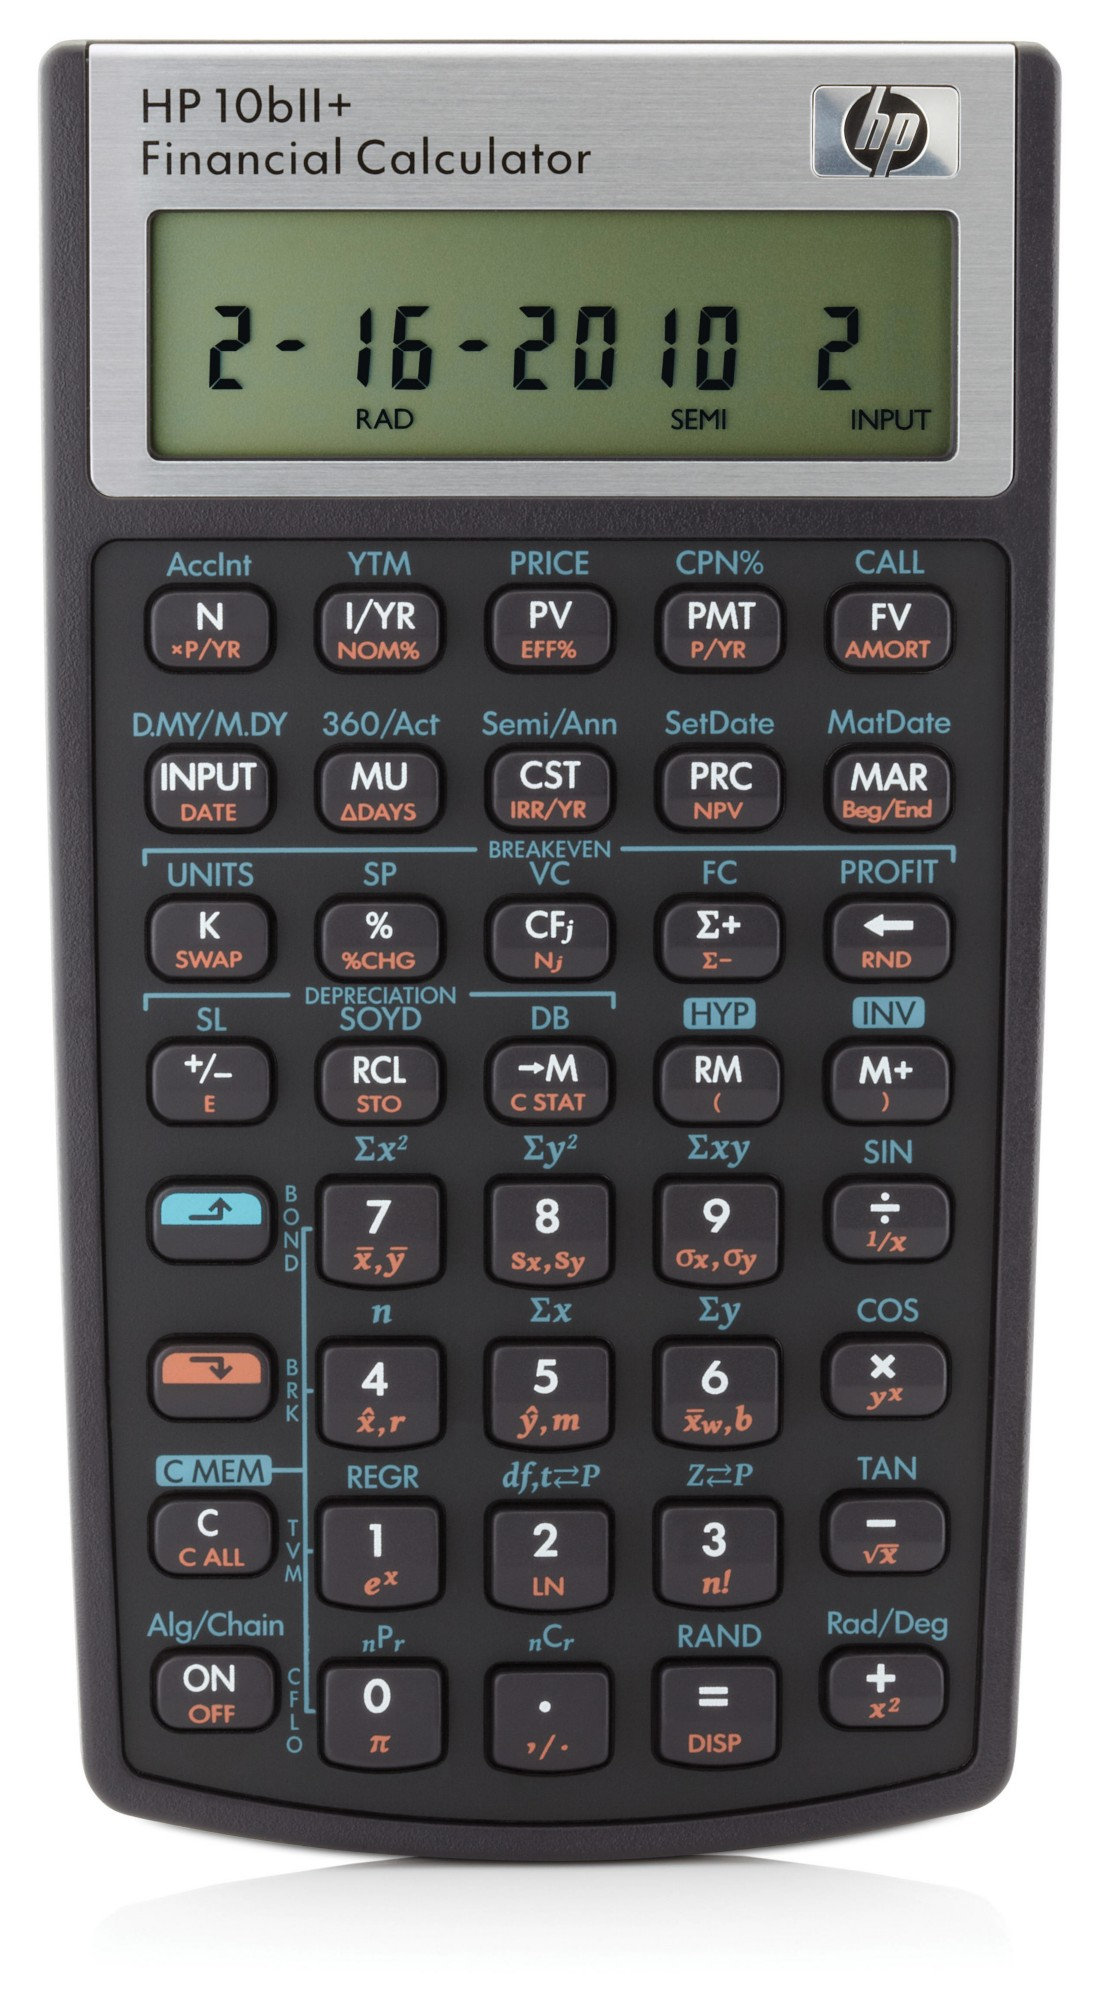 HP 10bII+ calculator